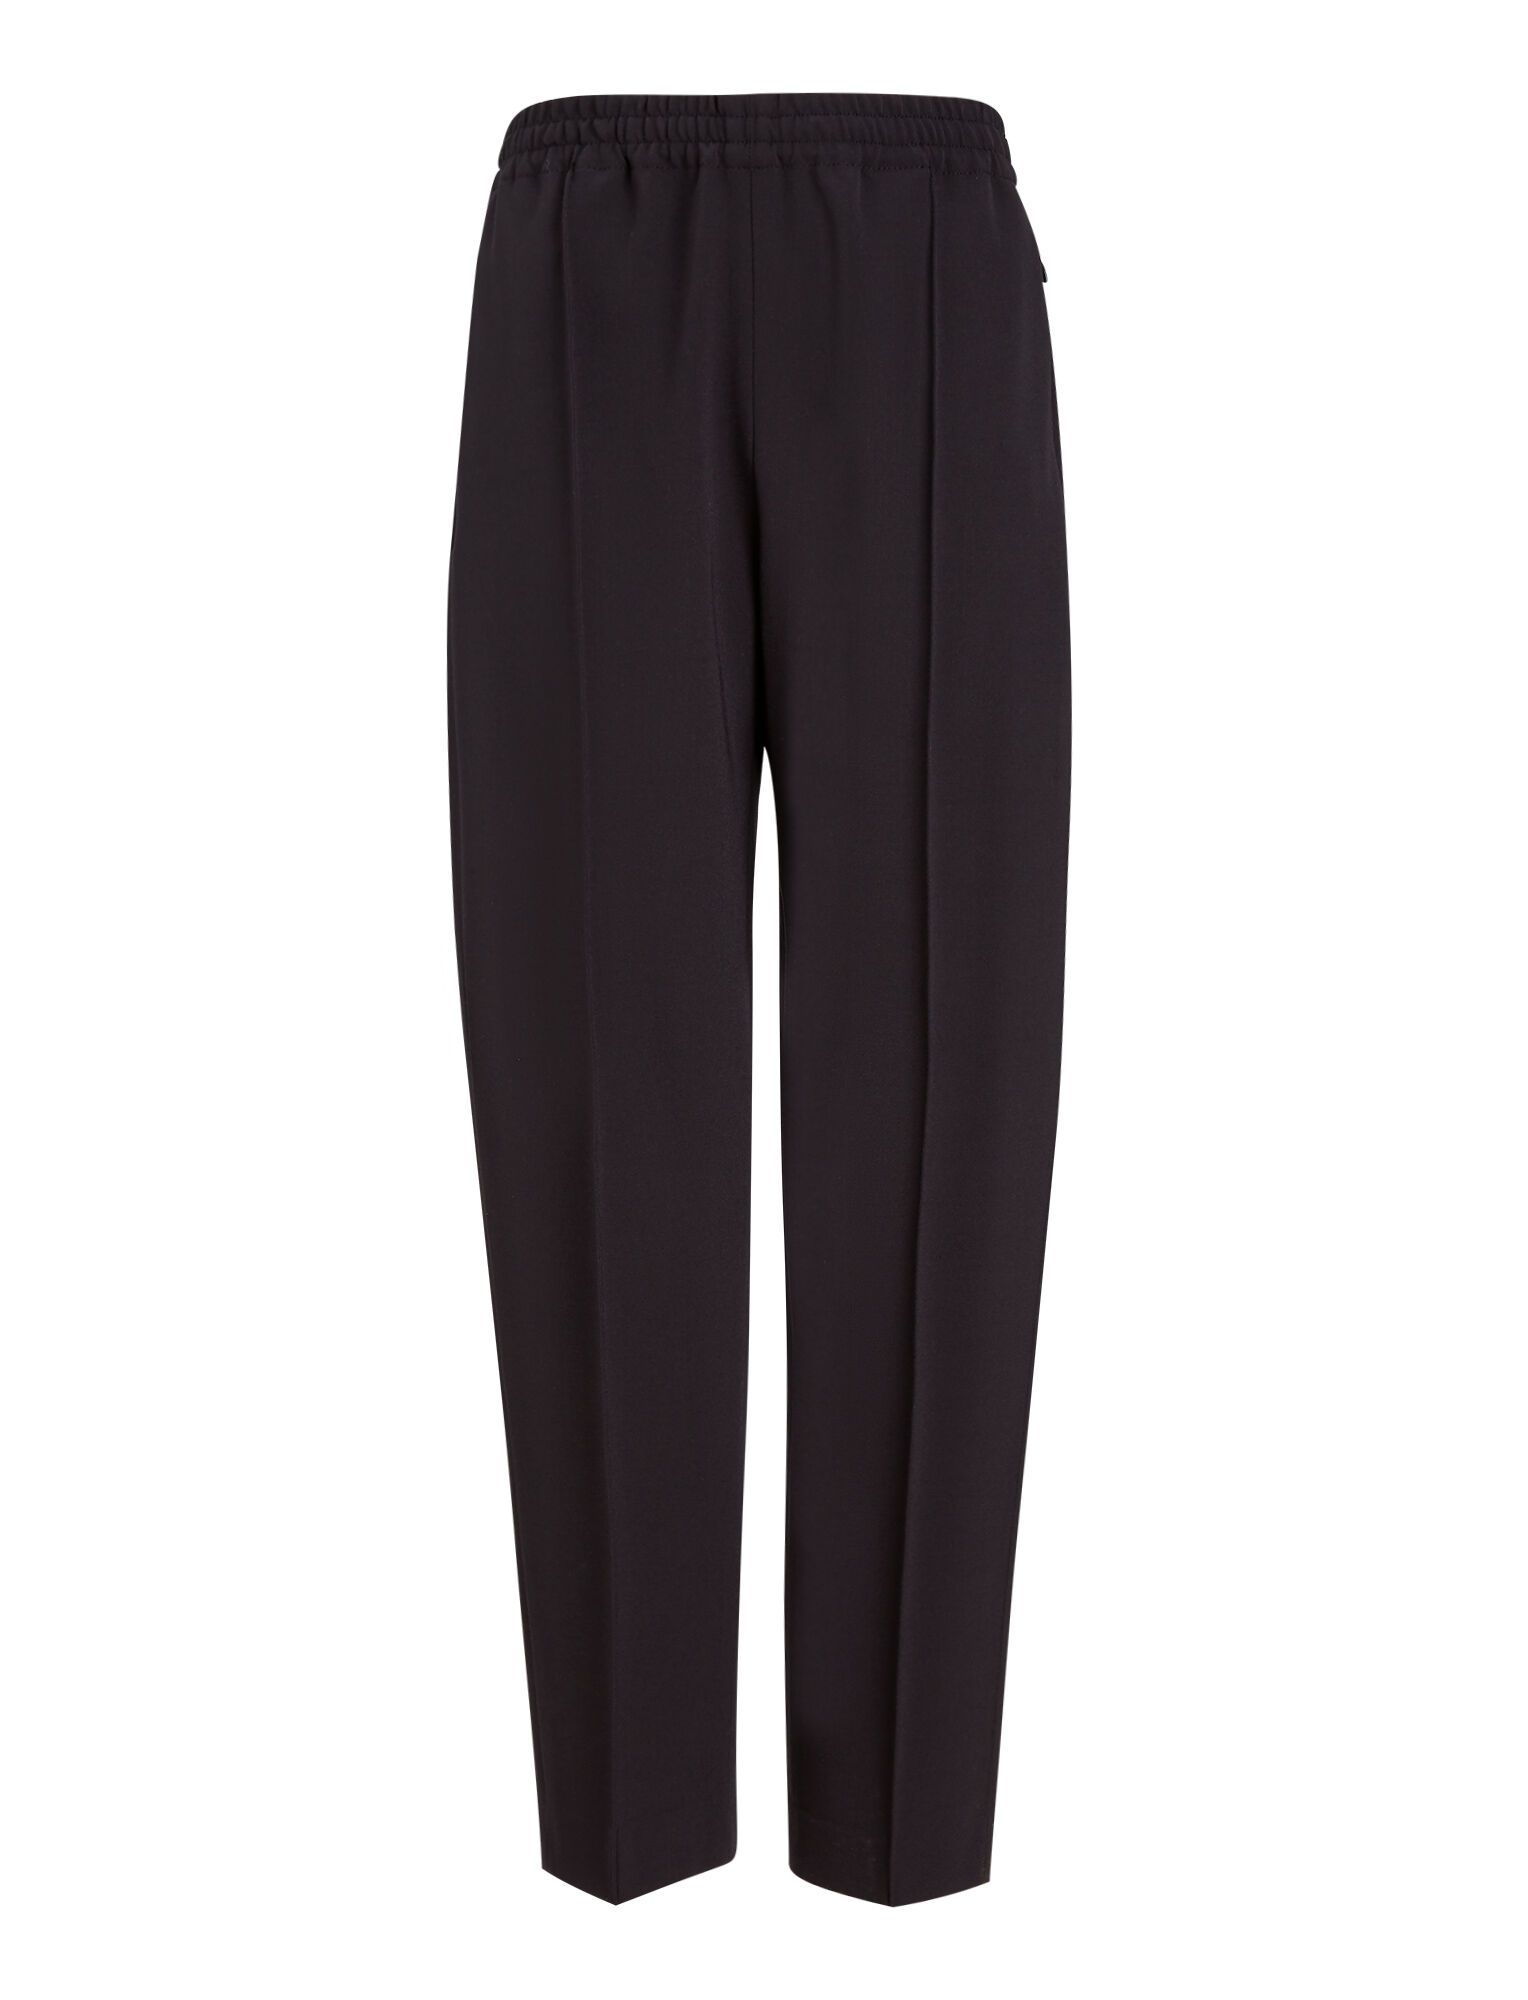 Joseph, Dalton Comfort Wool Trousers, in NAVY